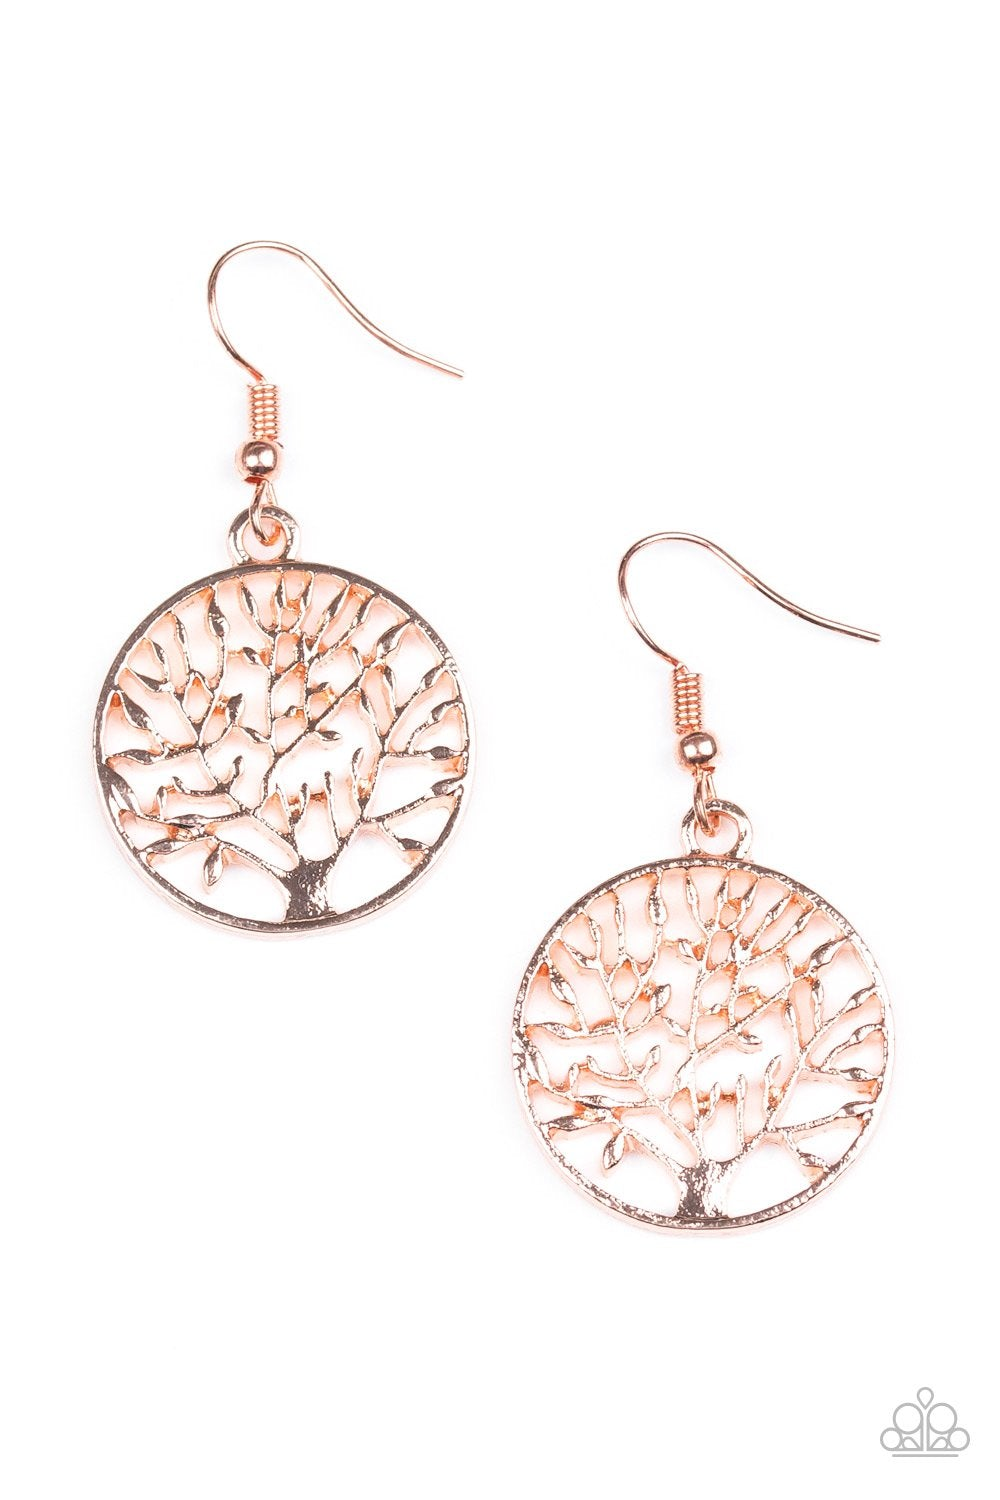 Brushed in a high-sheen finish, a shiny copper tree branches out across a circular frame for a whimsical look. Earring attaches to a standard fishhook fitting